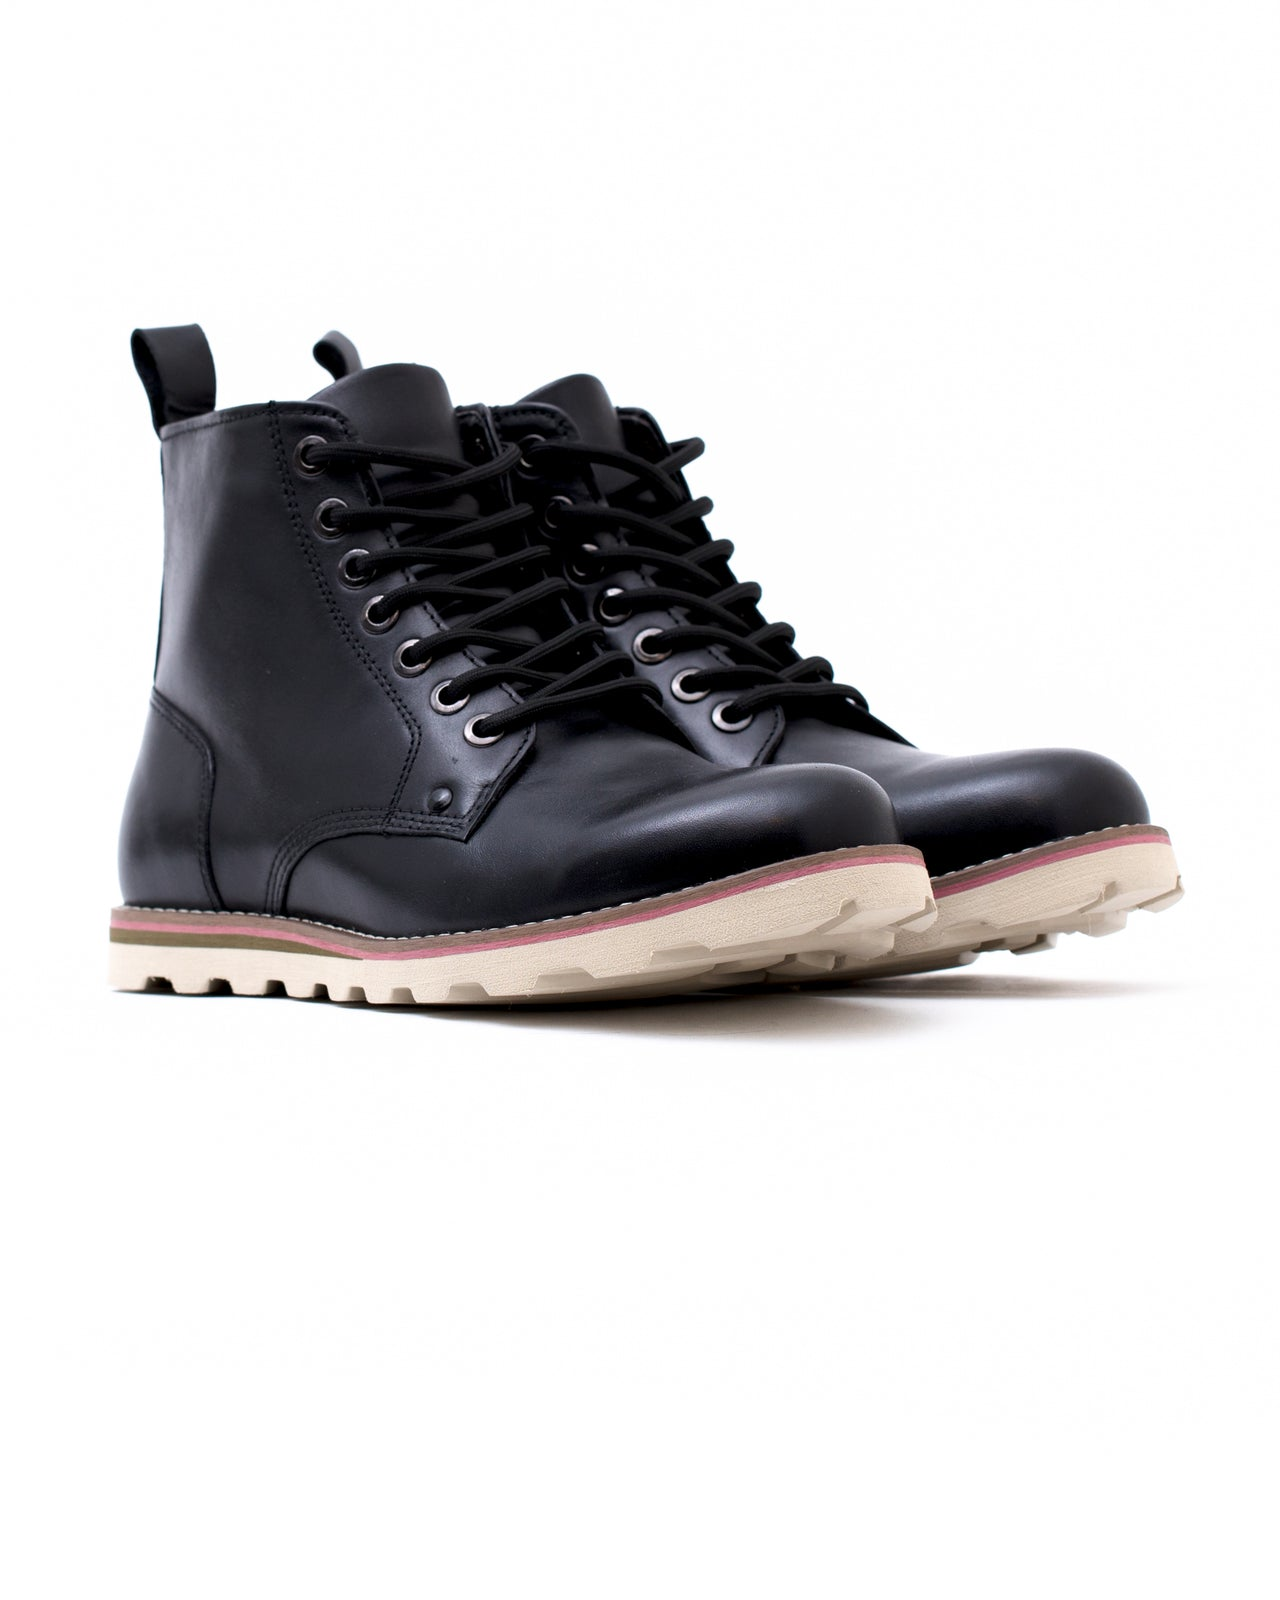 Work Boot - Color: Black Waxed Leather | Black